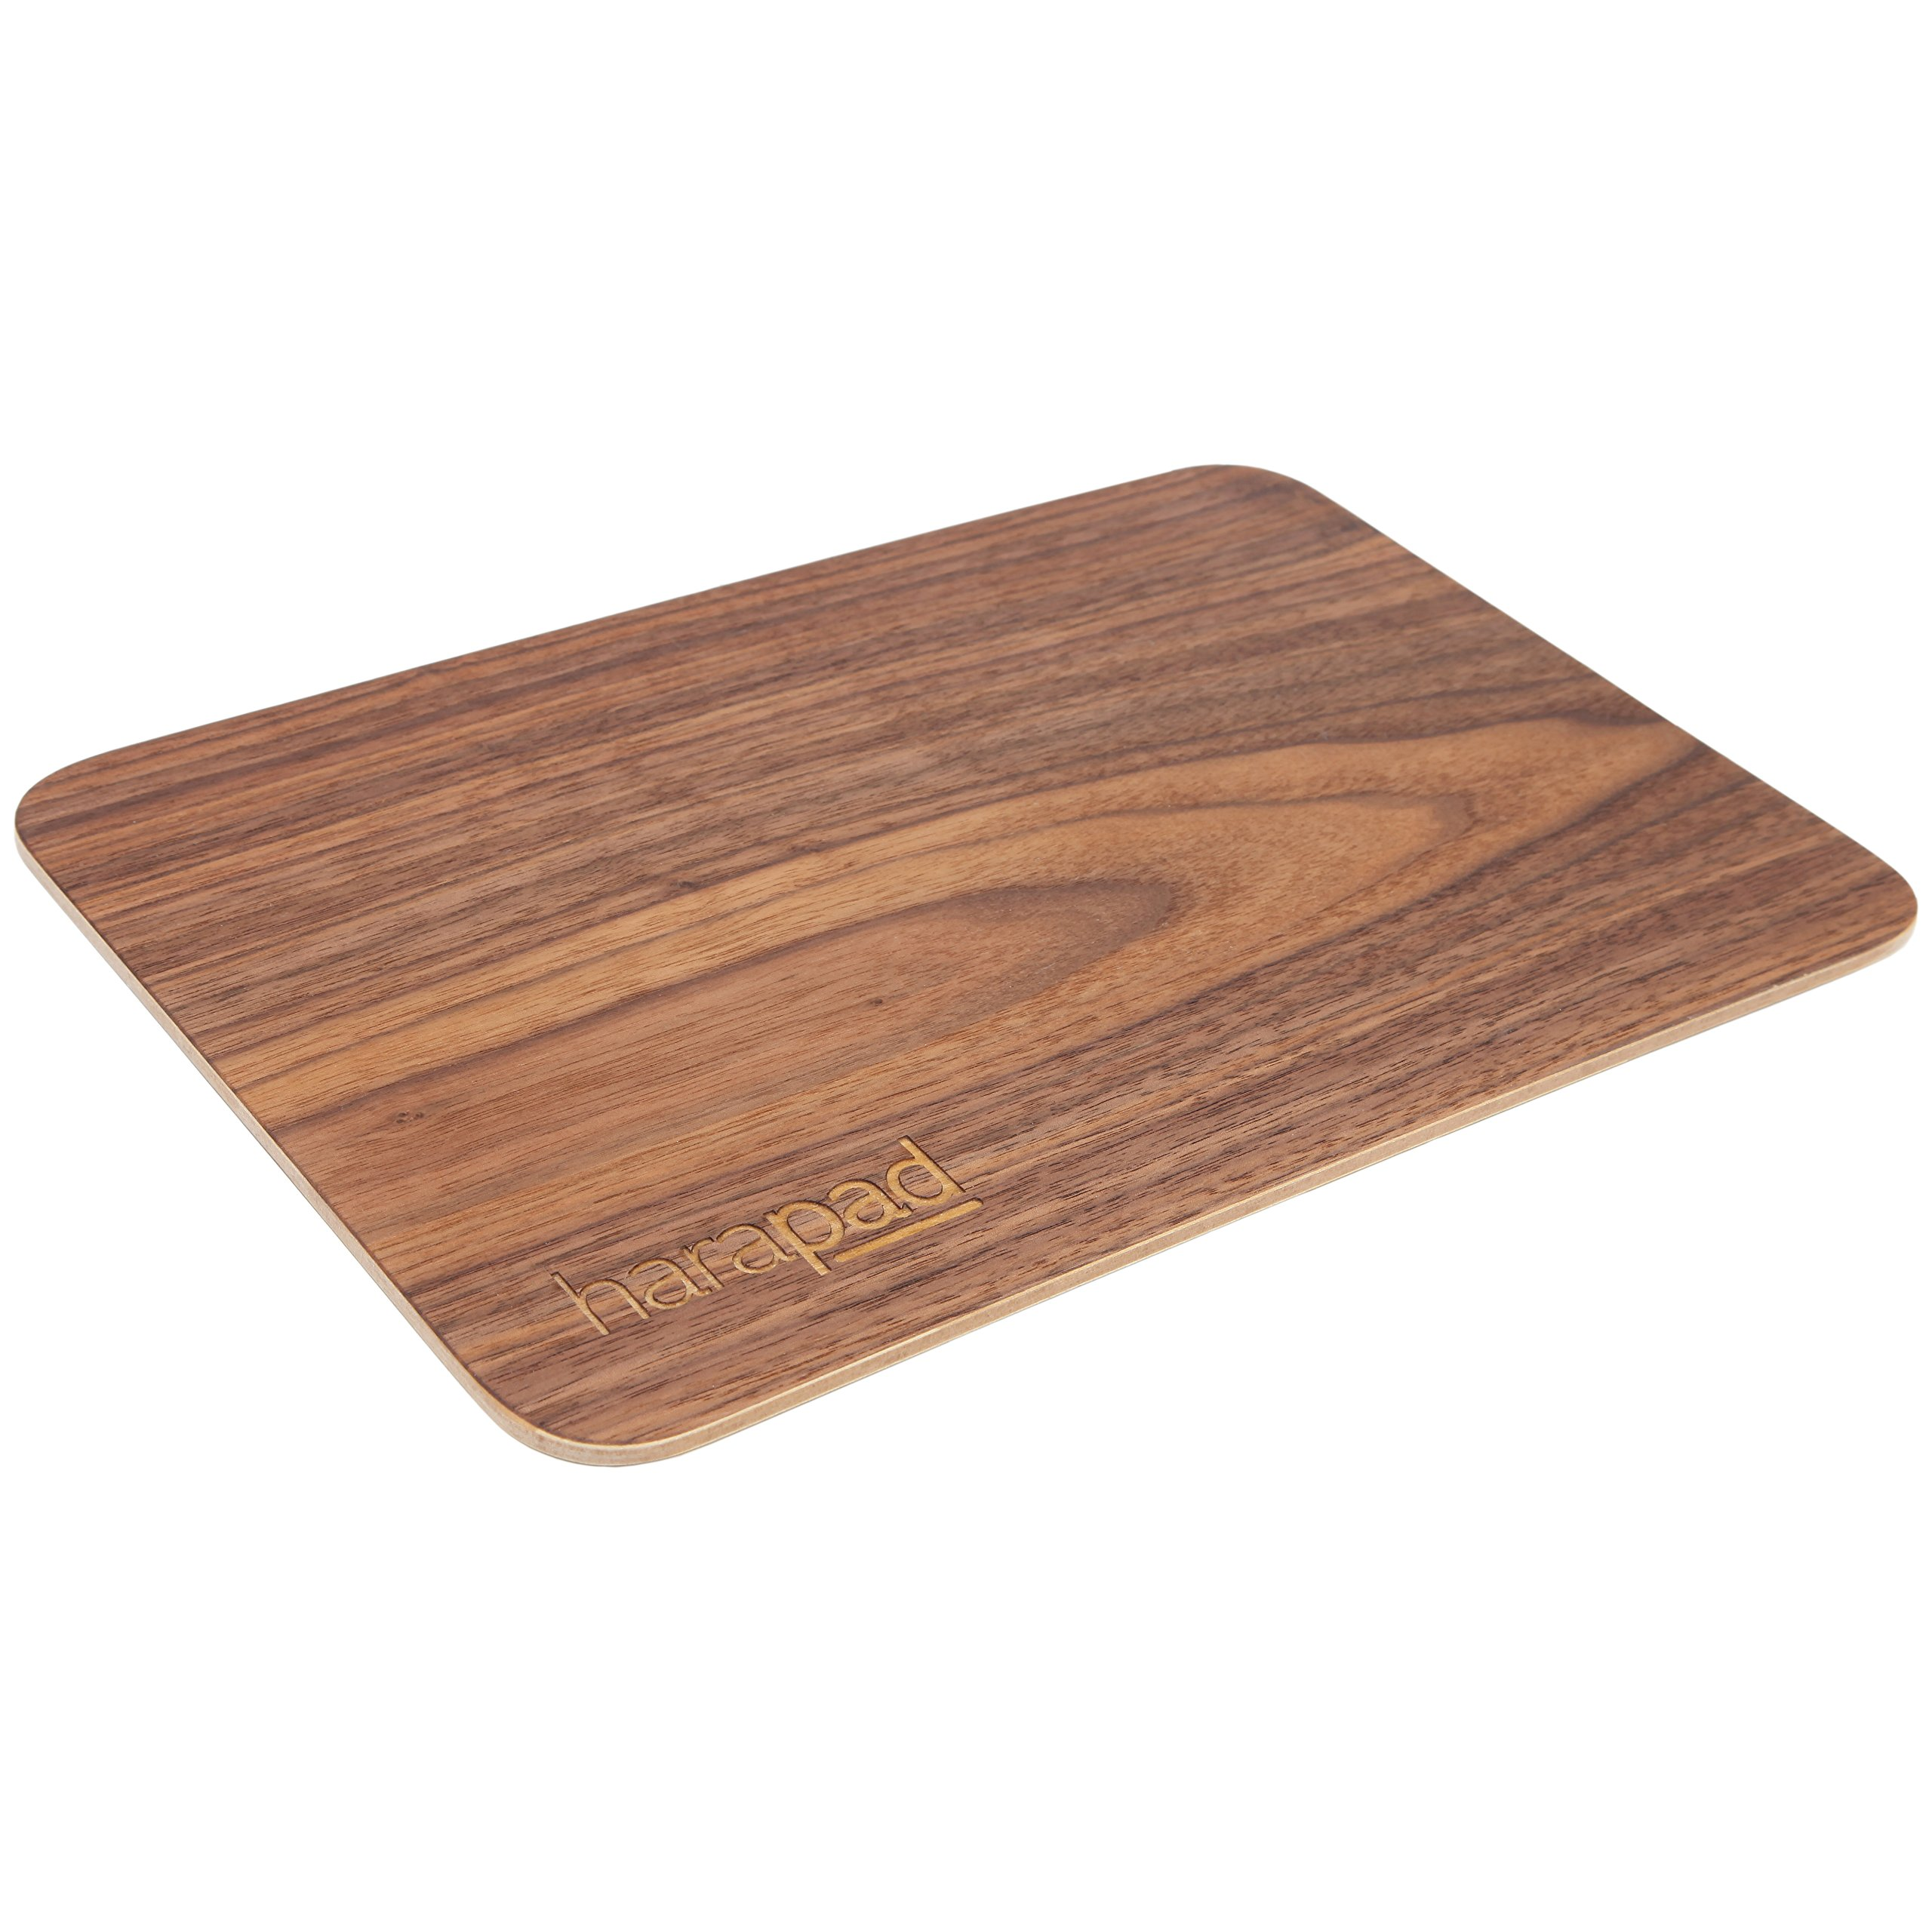 "Laptop EMF Pad Providing EMF and Radiation Protection. Real Wood for 17"" Laptops by HARApad"